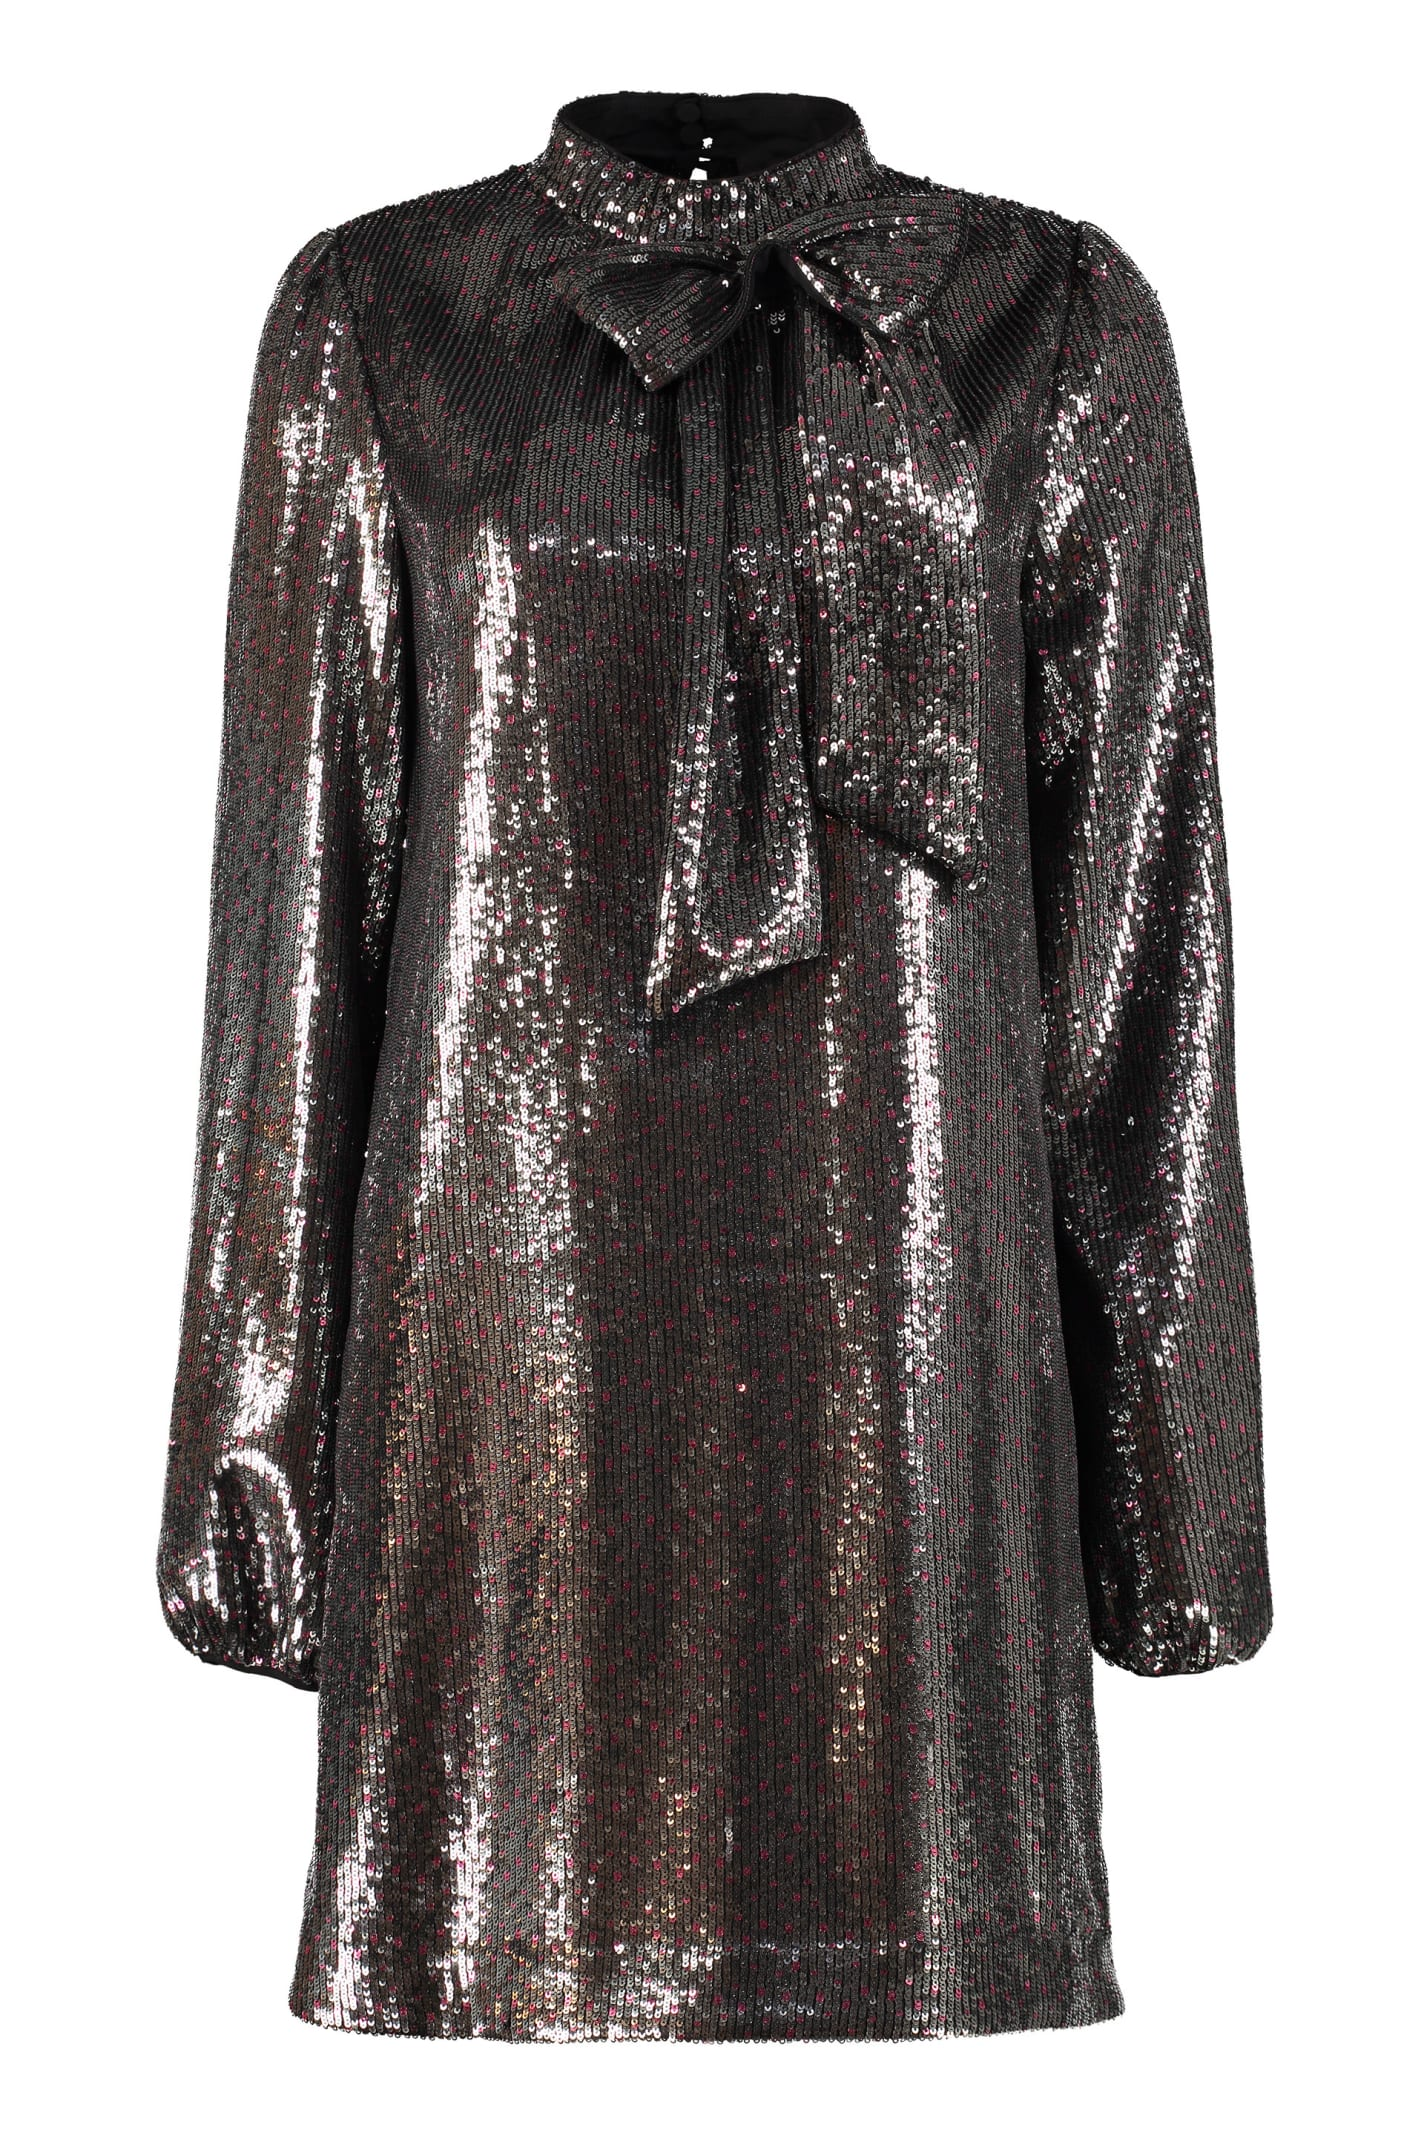 Buy N.21 Sequin Mini-dress online, shop N.21 with free shipping